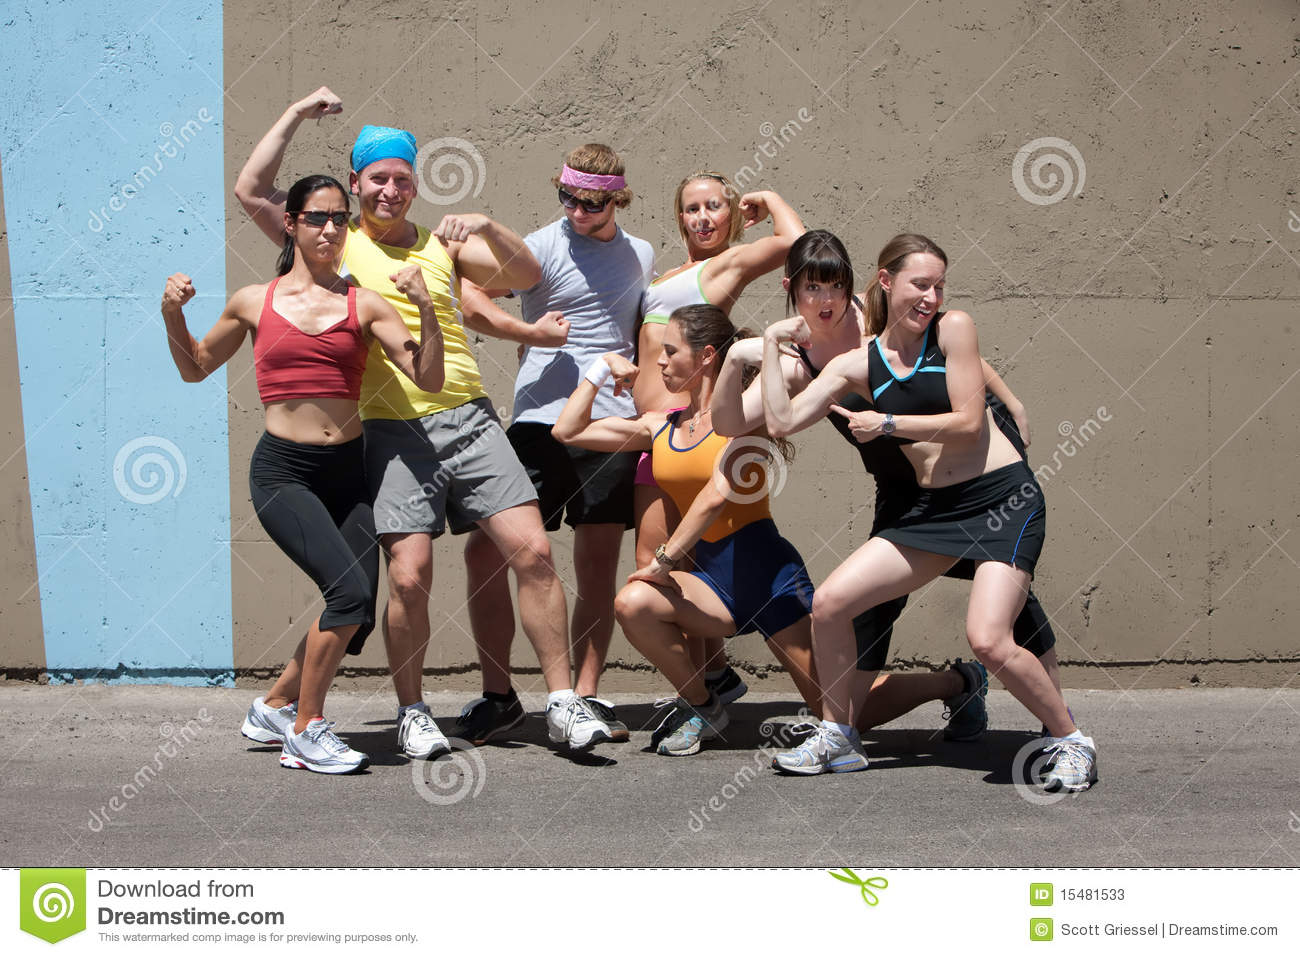 Runners Pose For Muscle Shot Stock Image - Image of exercise